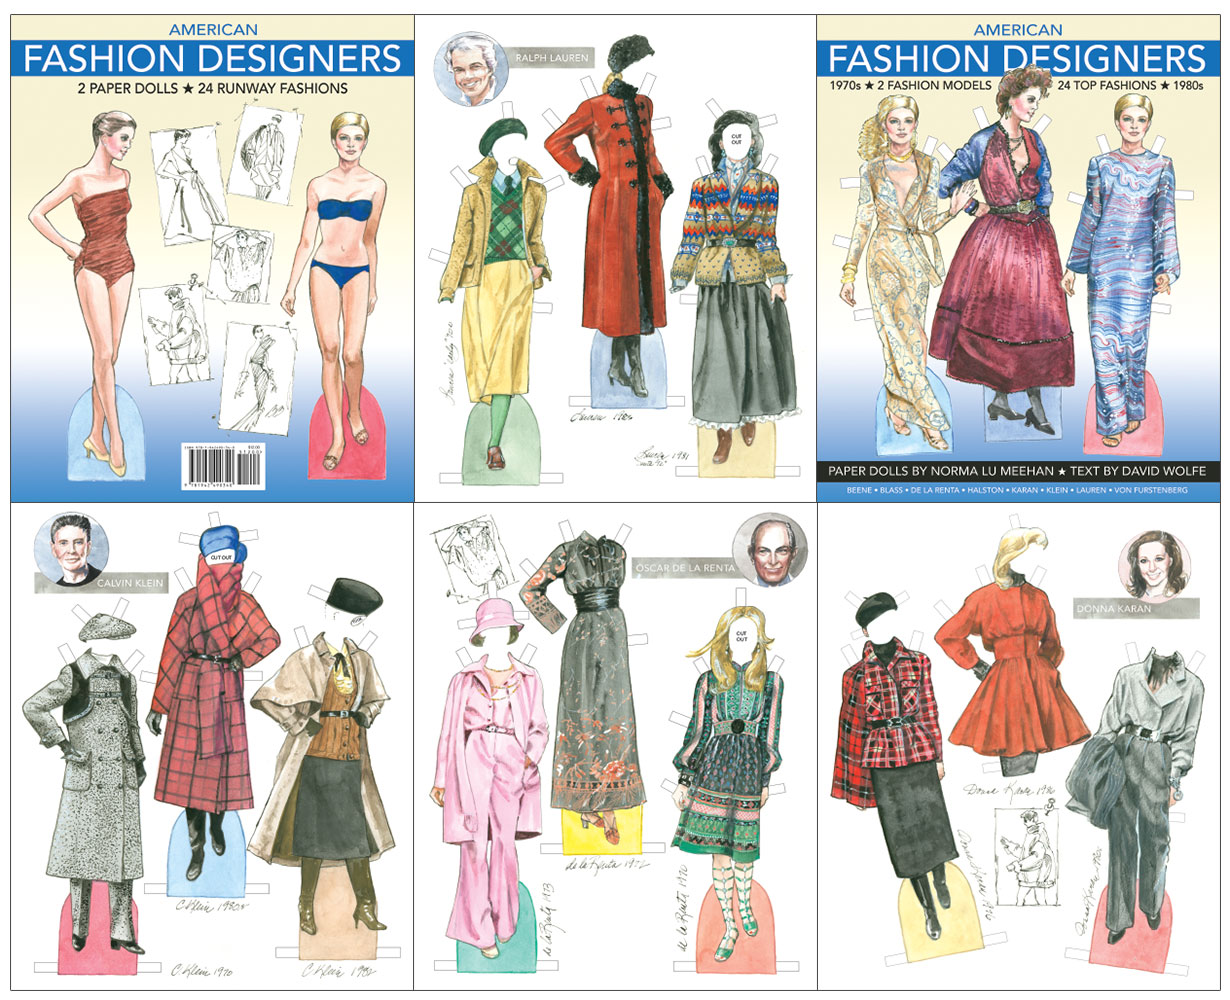 American Fashion Designers Paper Dolls